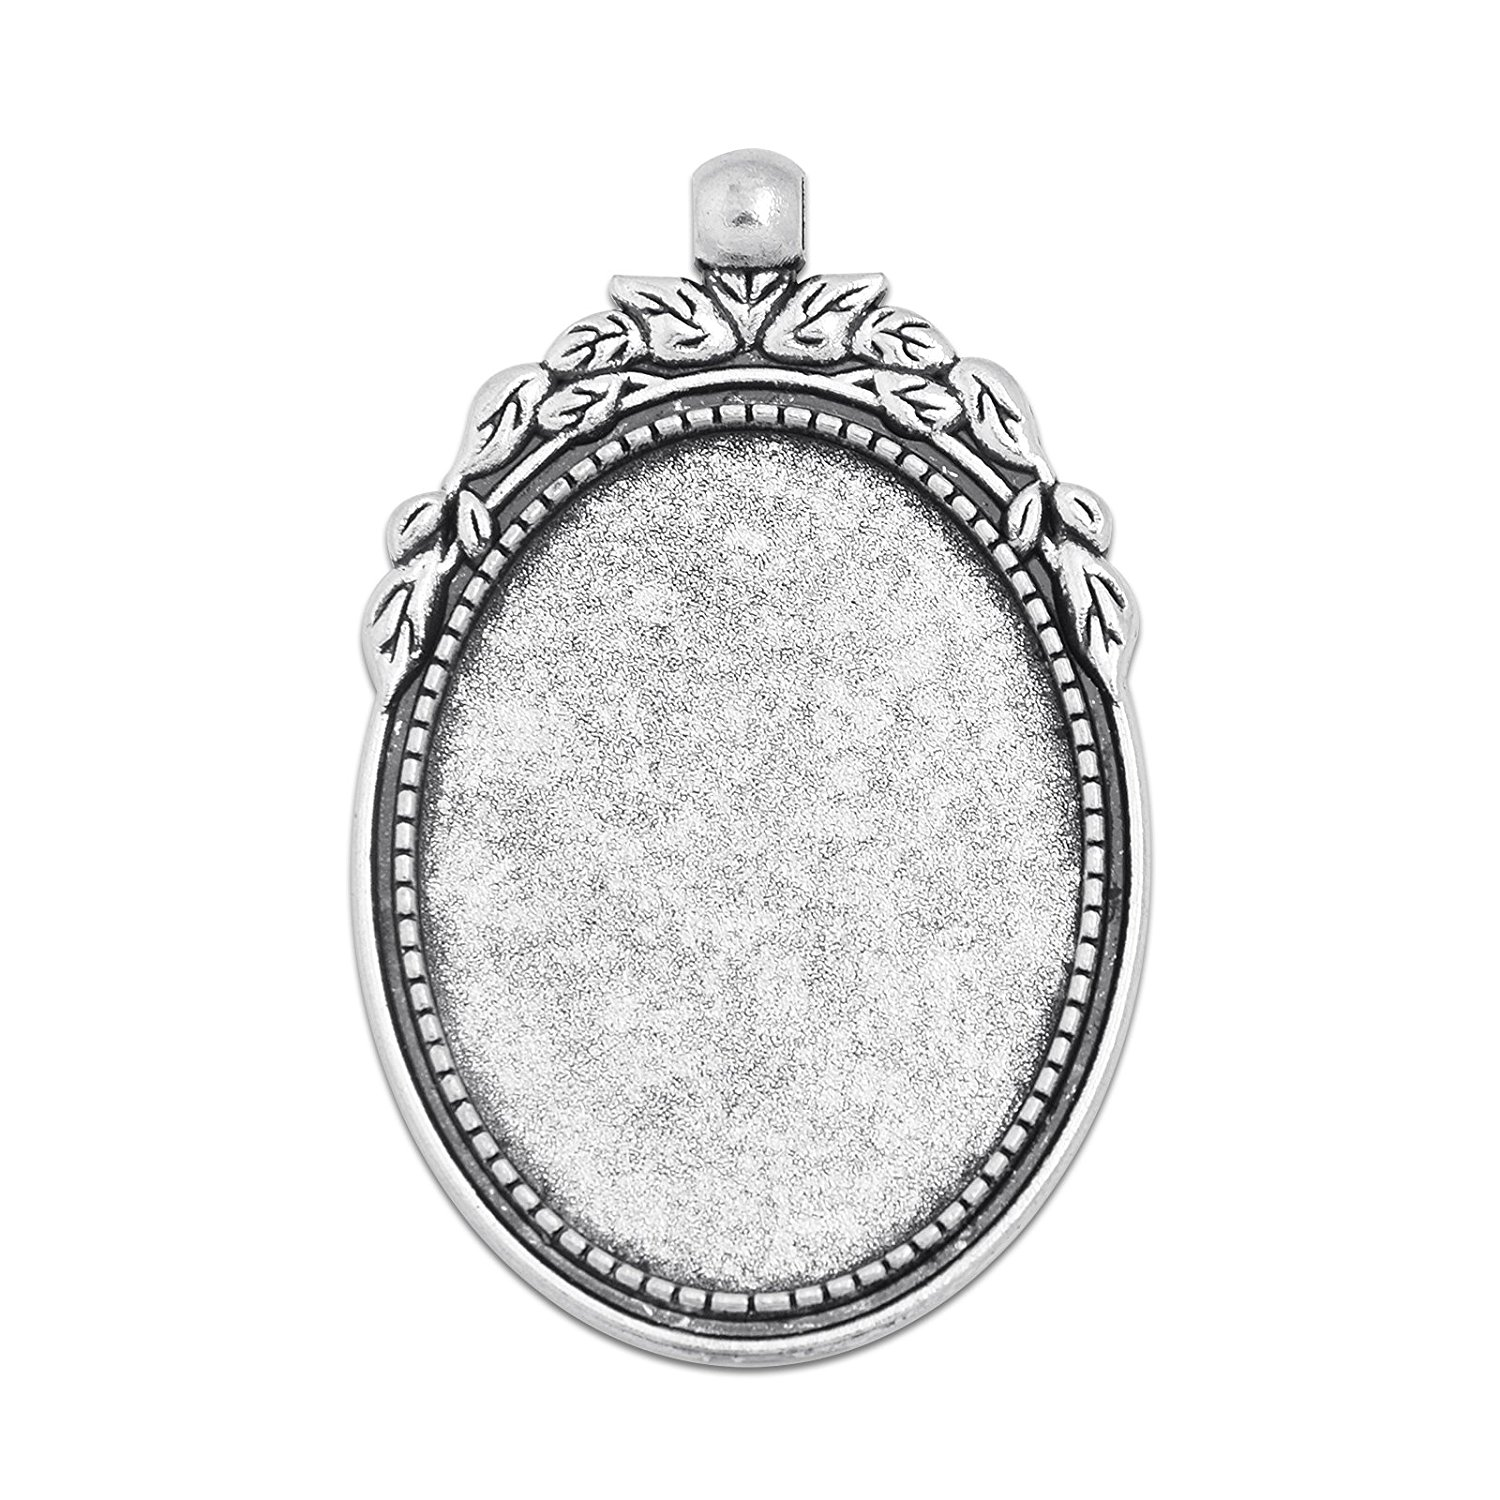 30x40mm Oval Pendant Tray Blank Base fit 30x40mm Oval Cabochon Pack of 20 (Antique Silver)